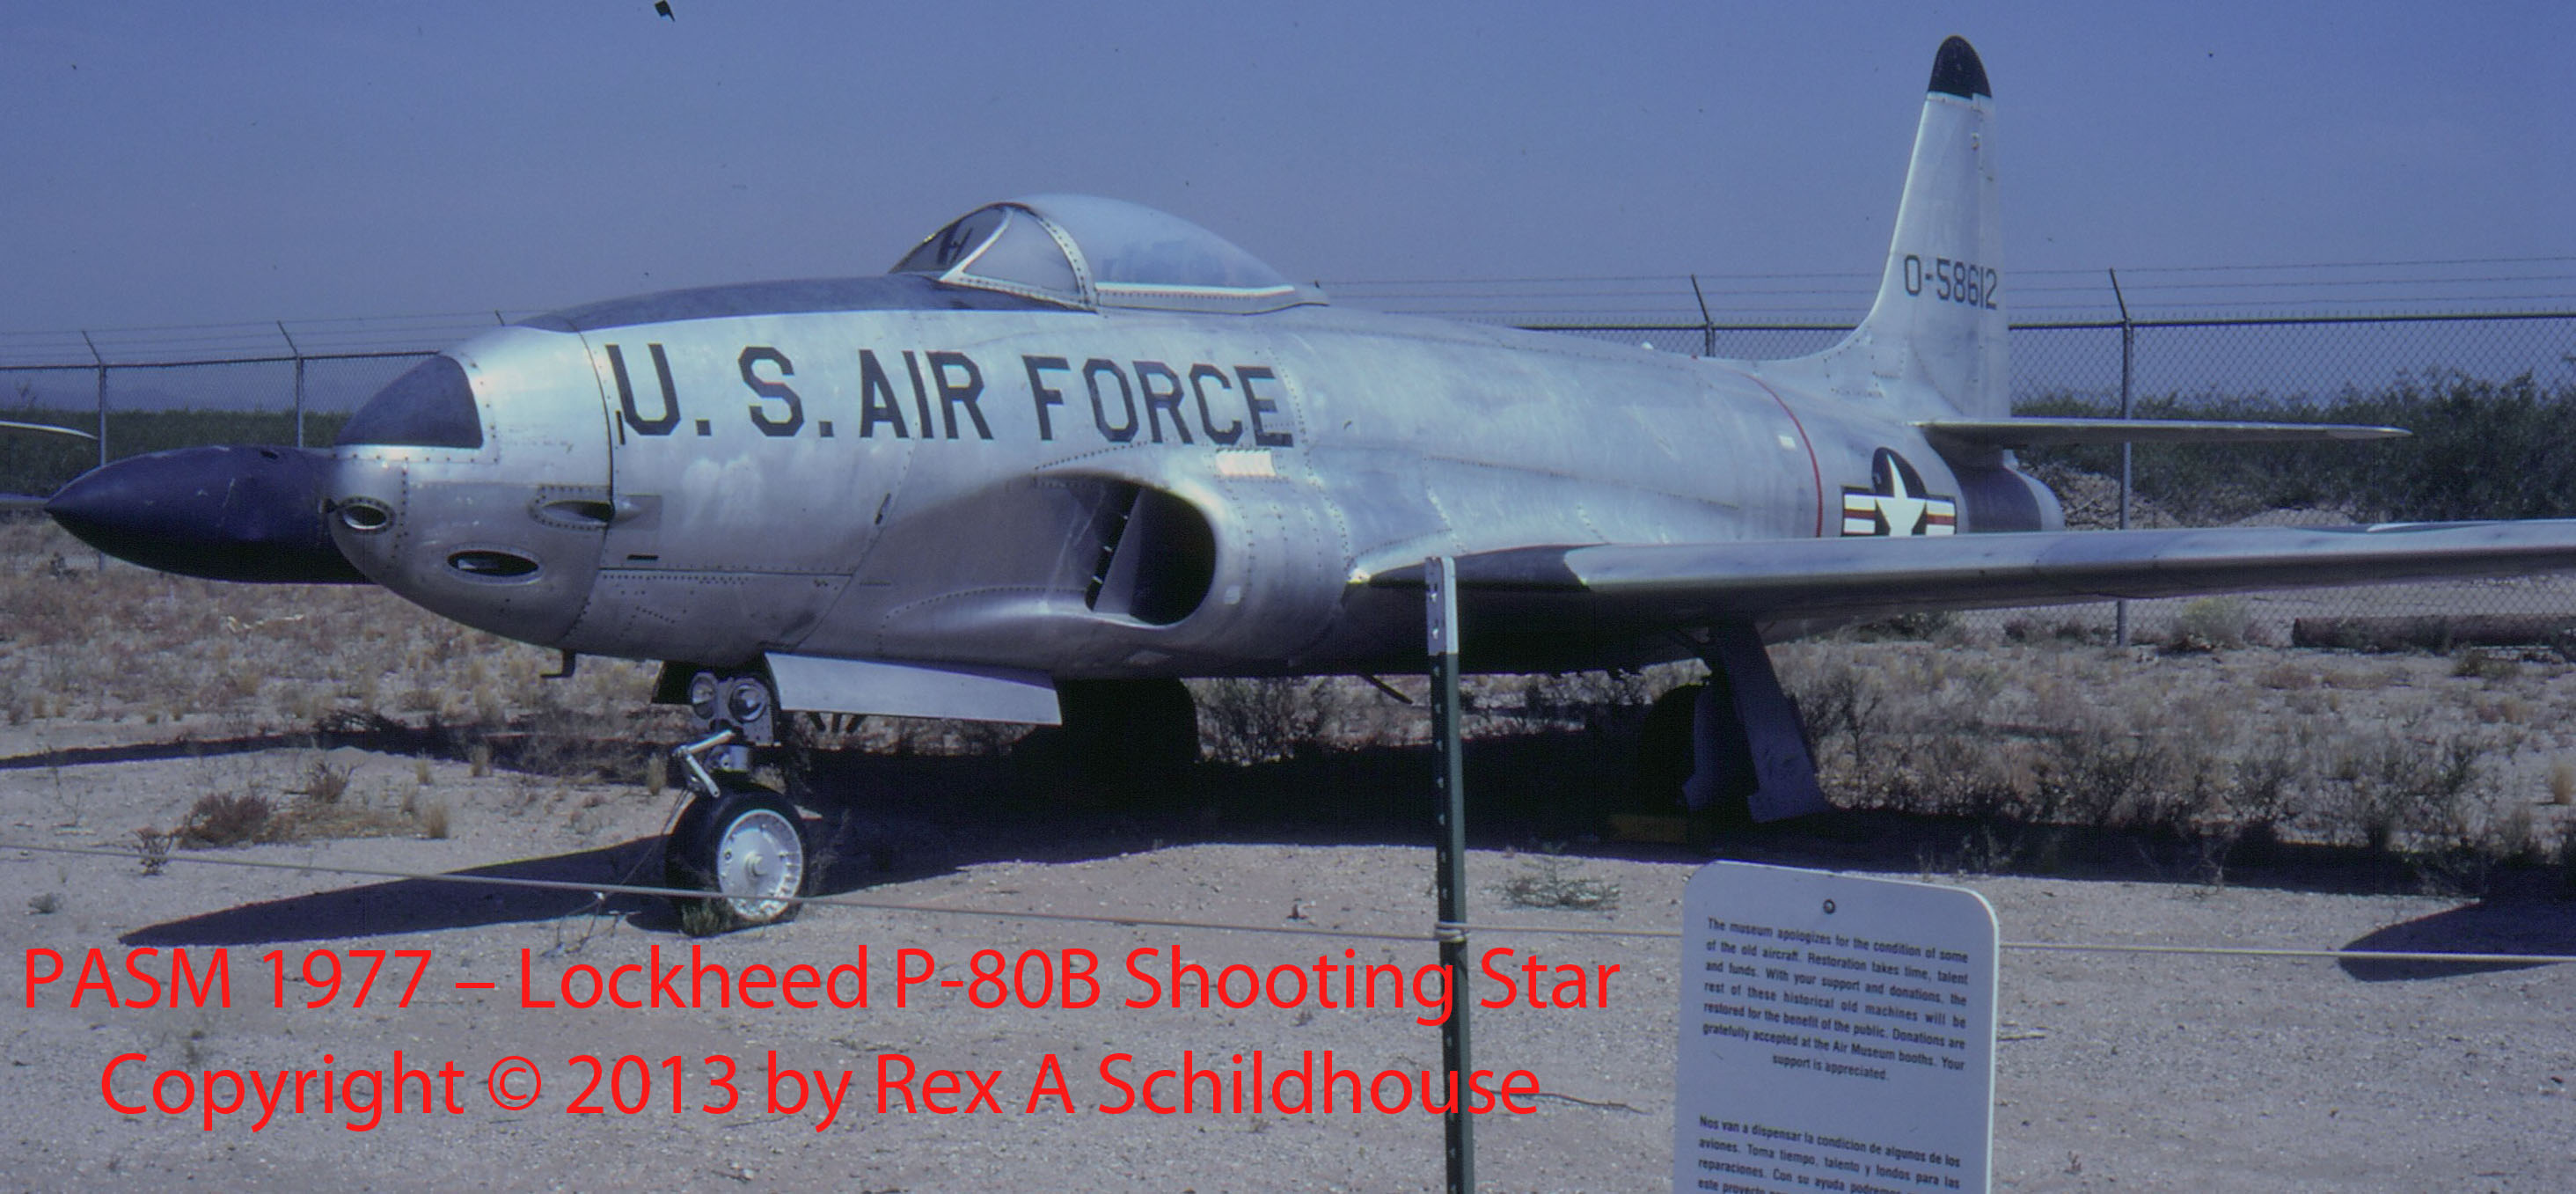 Lockheed P-80B Shooting Star